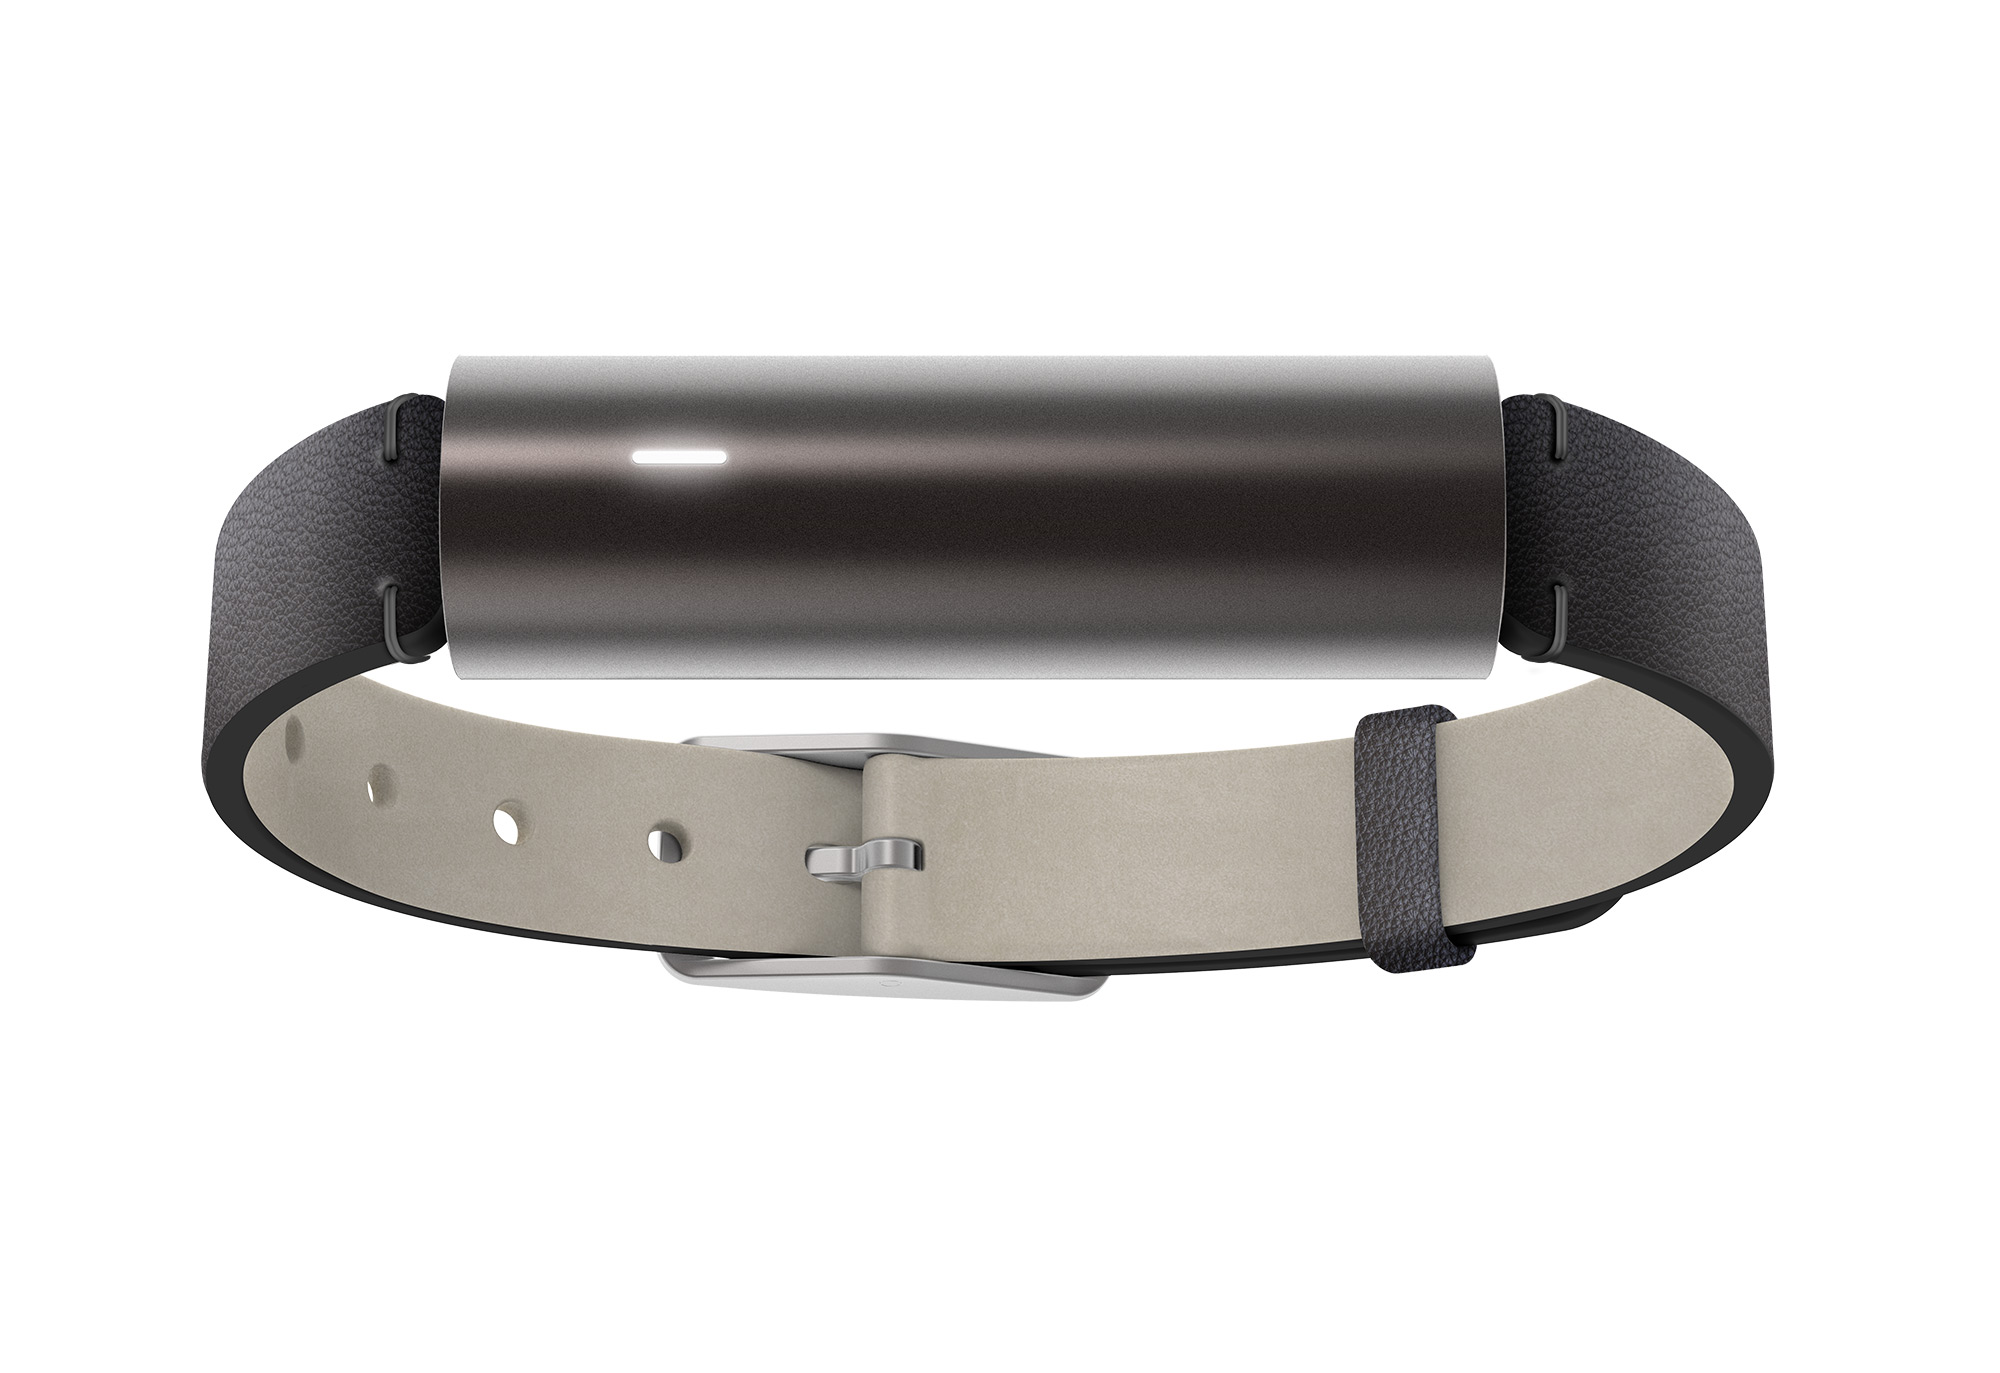 Misfit Ray Fitness & Sleep Tracker + Leather Band (Carbon Black)